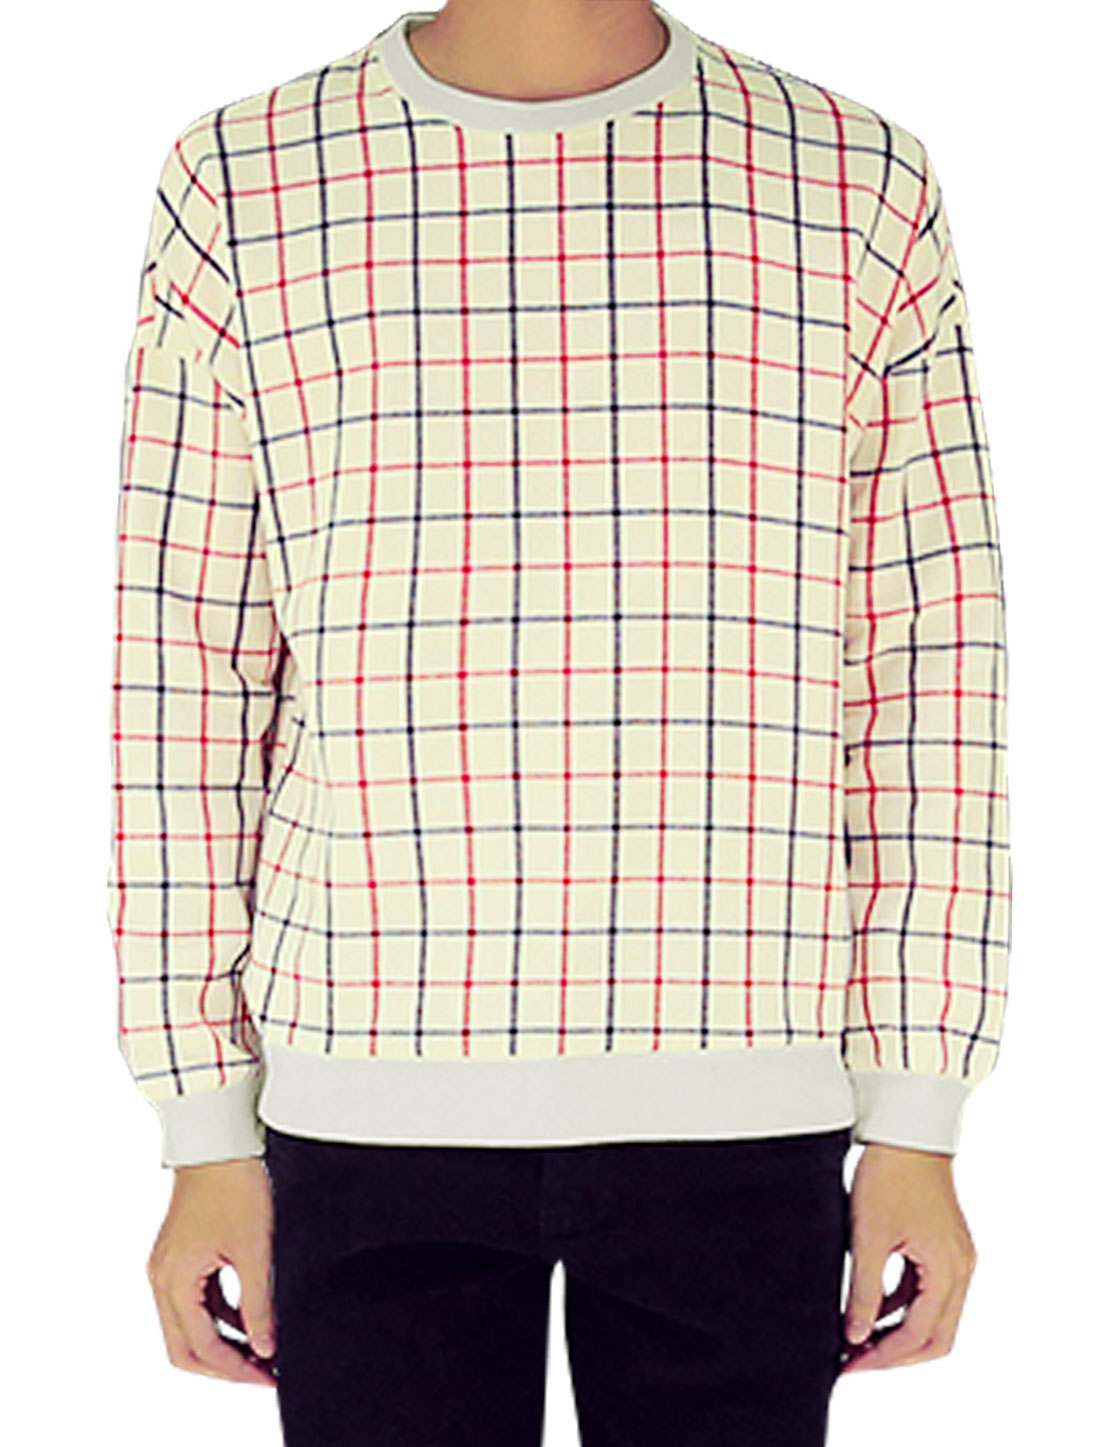 Men Long Sleeves Crew Neck Pullover Checks Pattern Casual T-Shirt Red Beige M